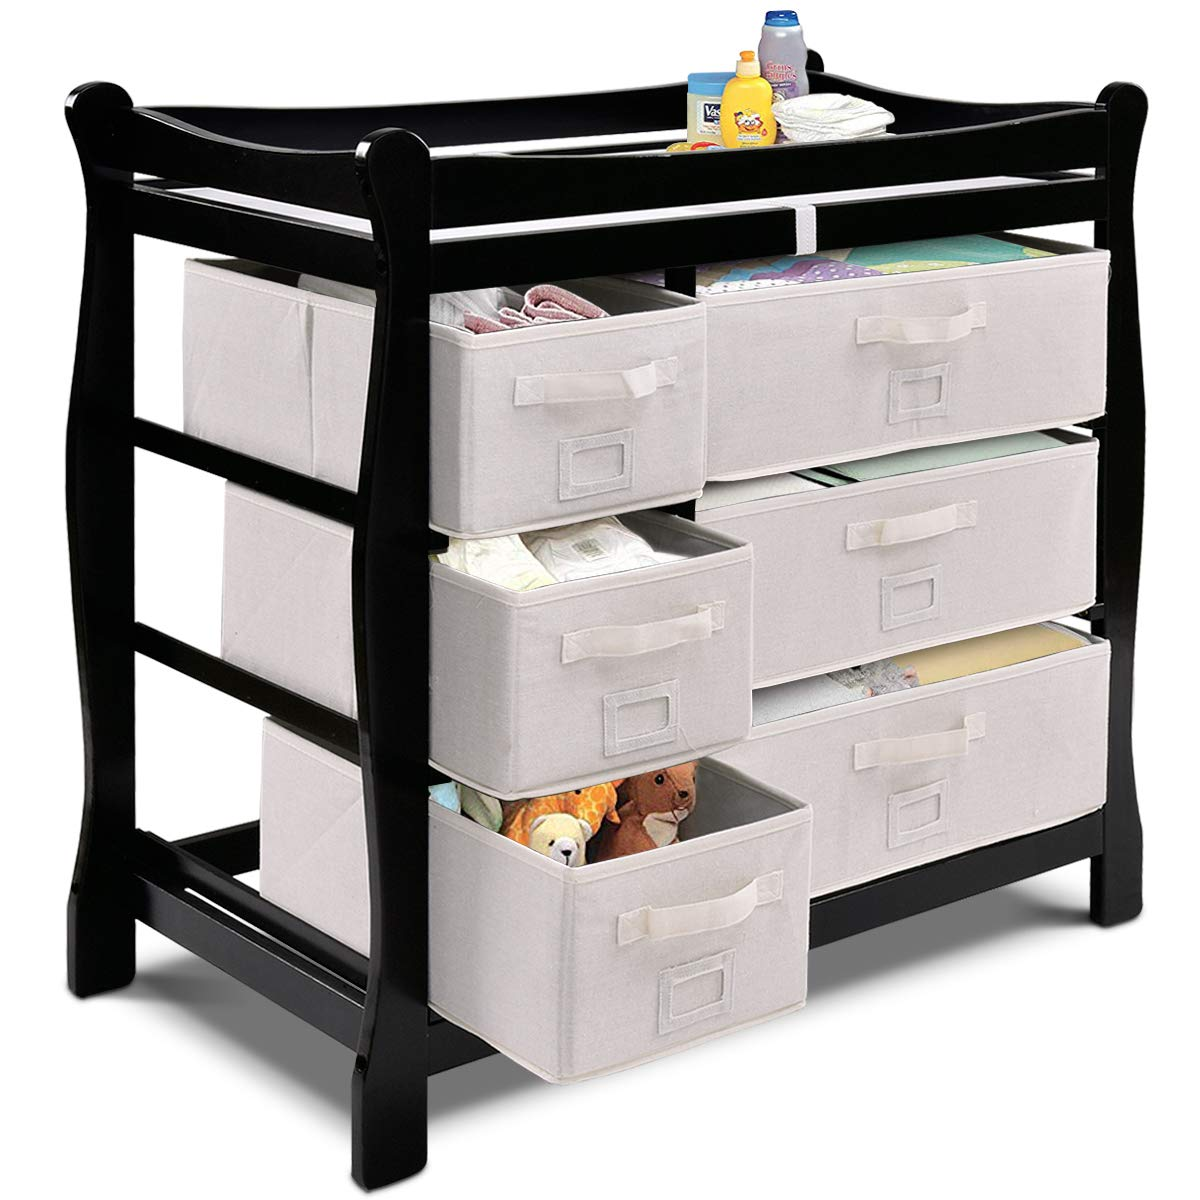 Costzon Baby Changing Table, Infant Diaper Changing Table Organization, Newborn Nursery Station with Pad, Sleigh Style Nursery Dresser Changing Table with Hamper/ 6 Baskets (Black) by Costzon